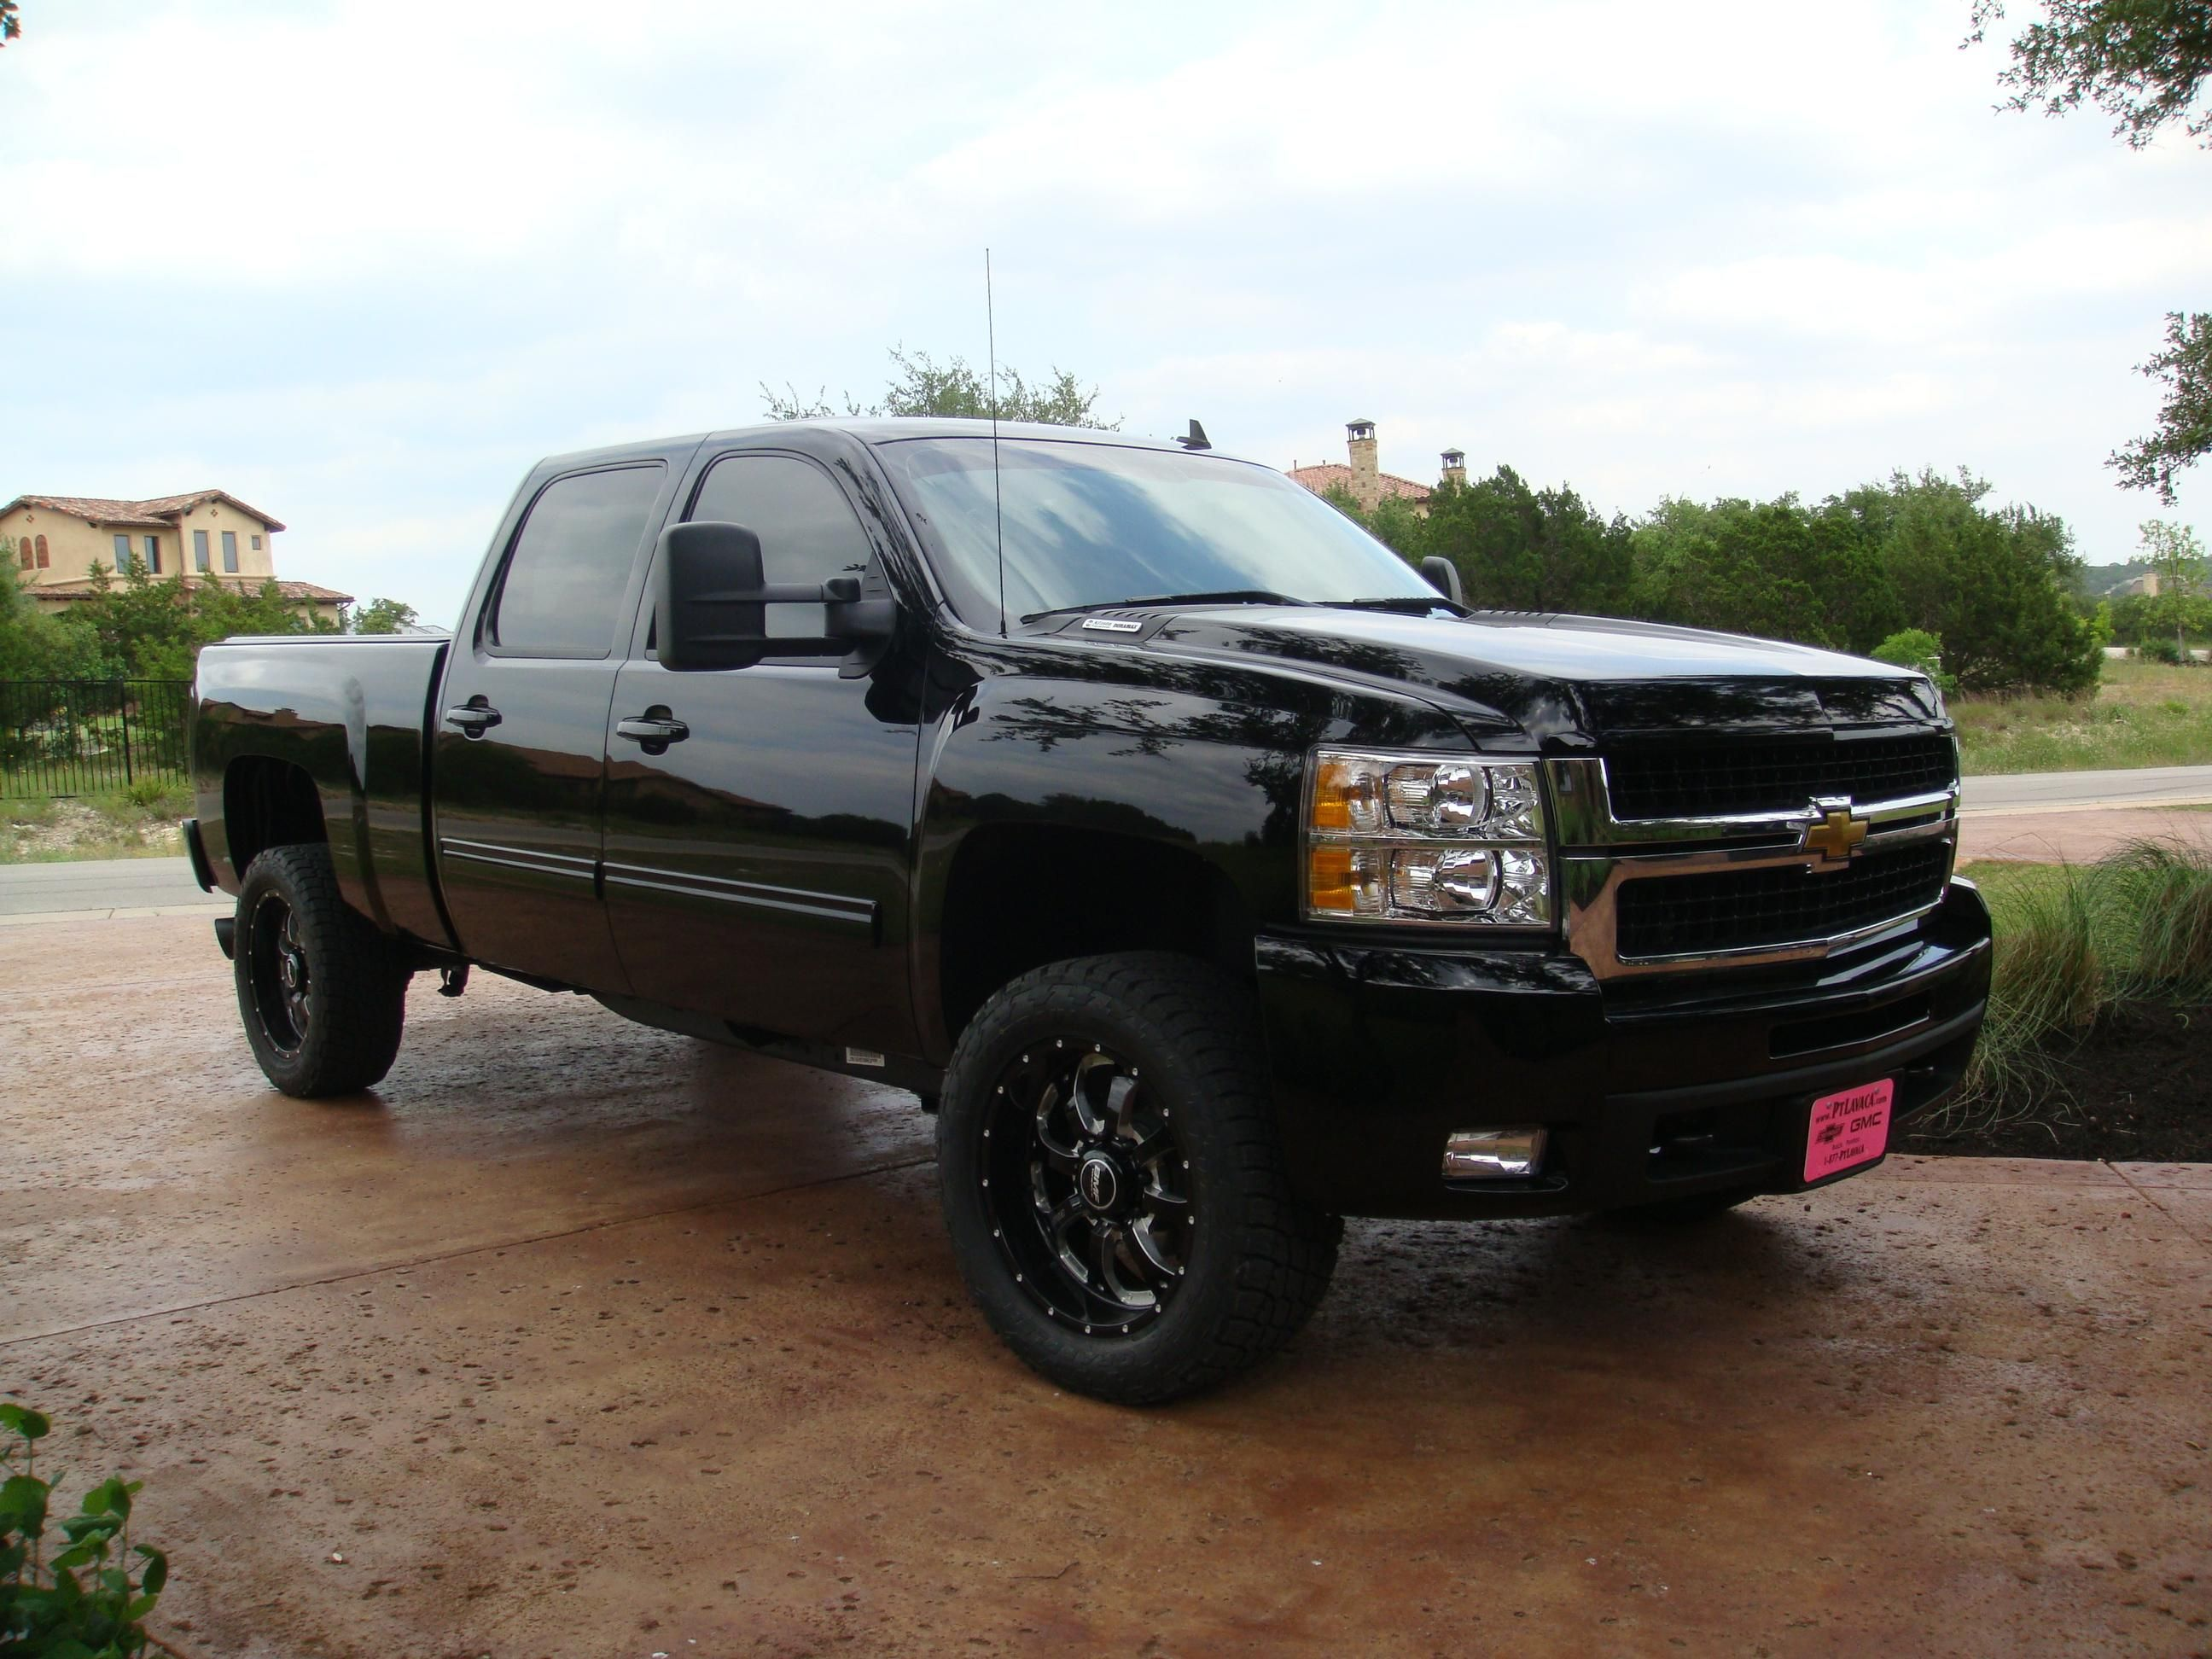 so all many black ways htm midnight one grill wheels look with chrome img the out silverado some edition first stands chevrolet you just bumpers want makes in